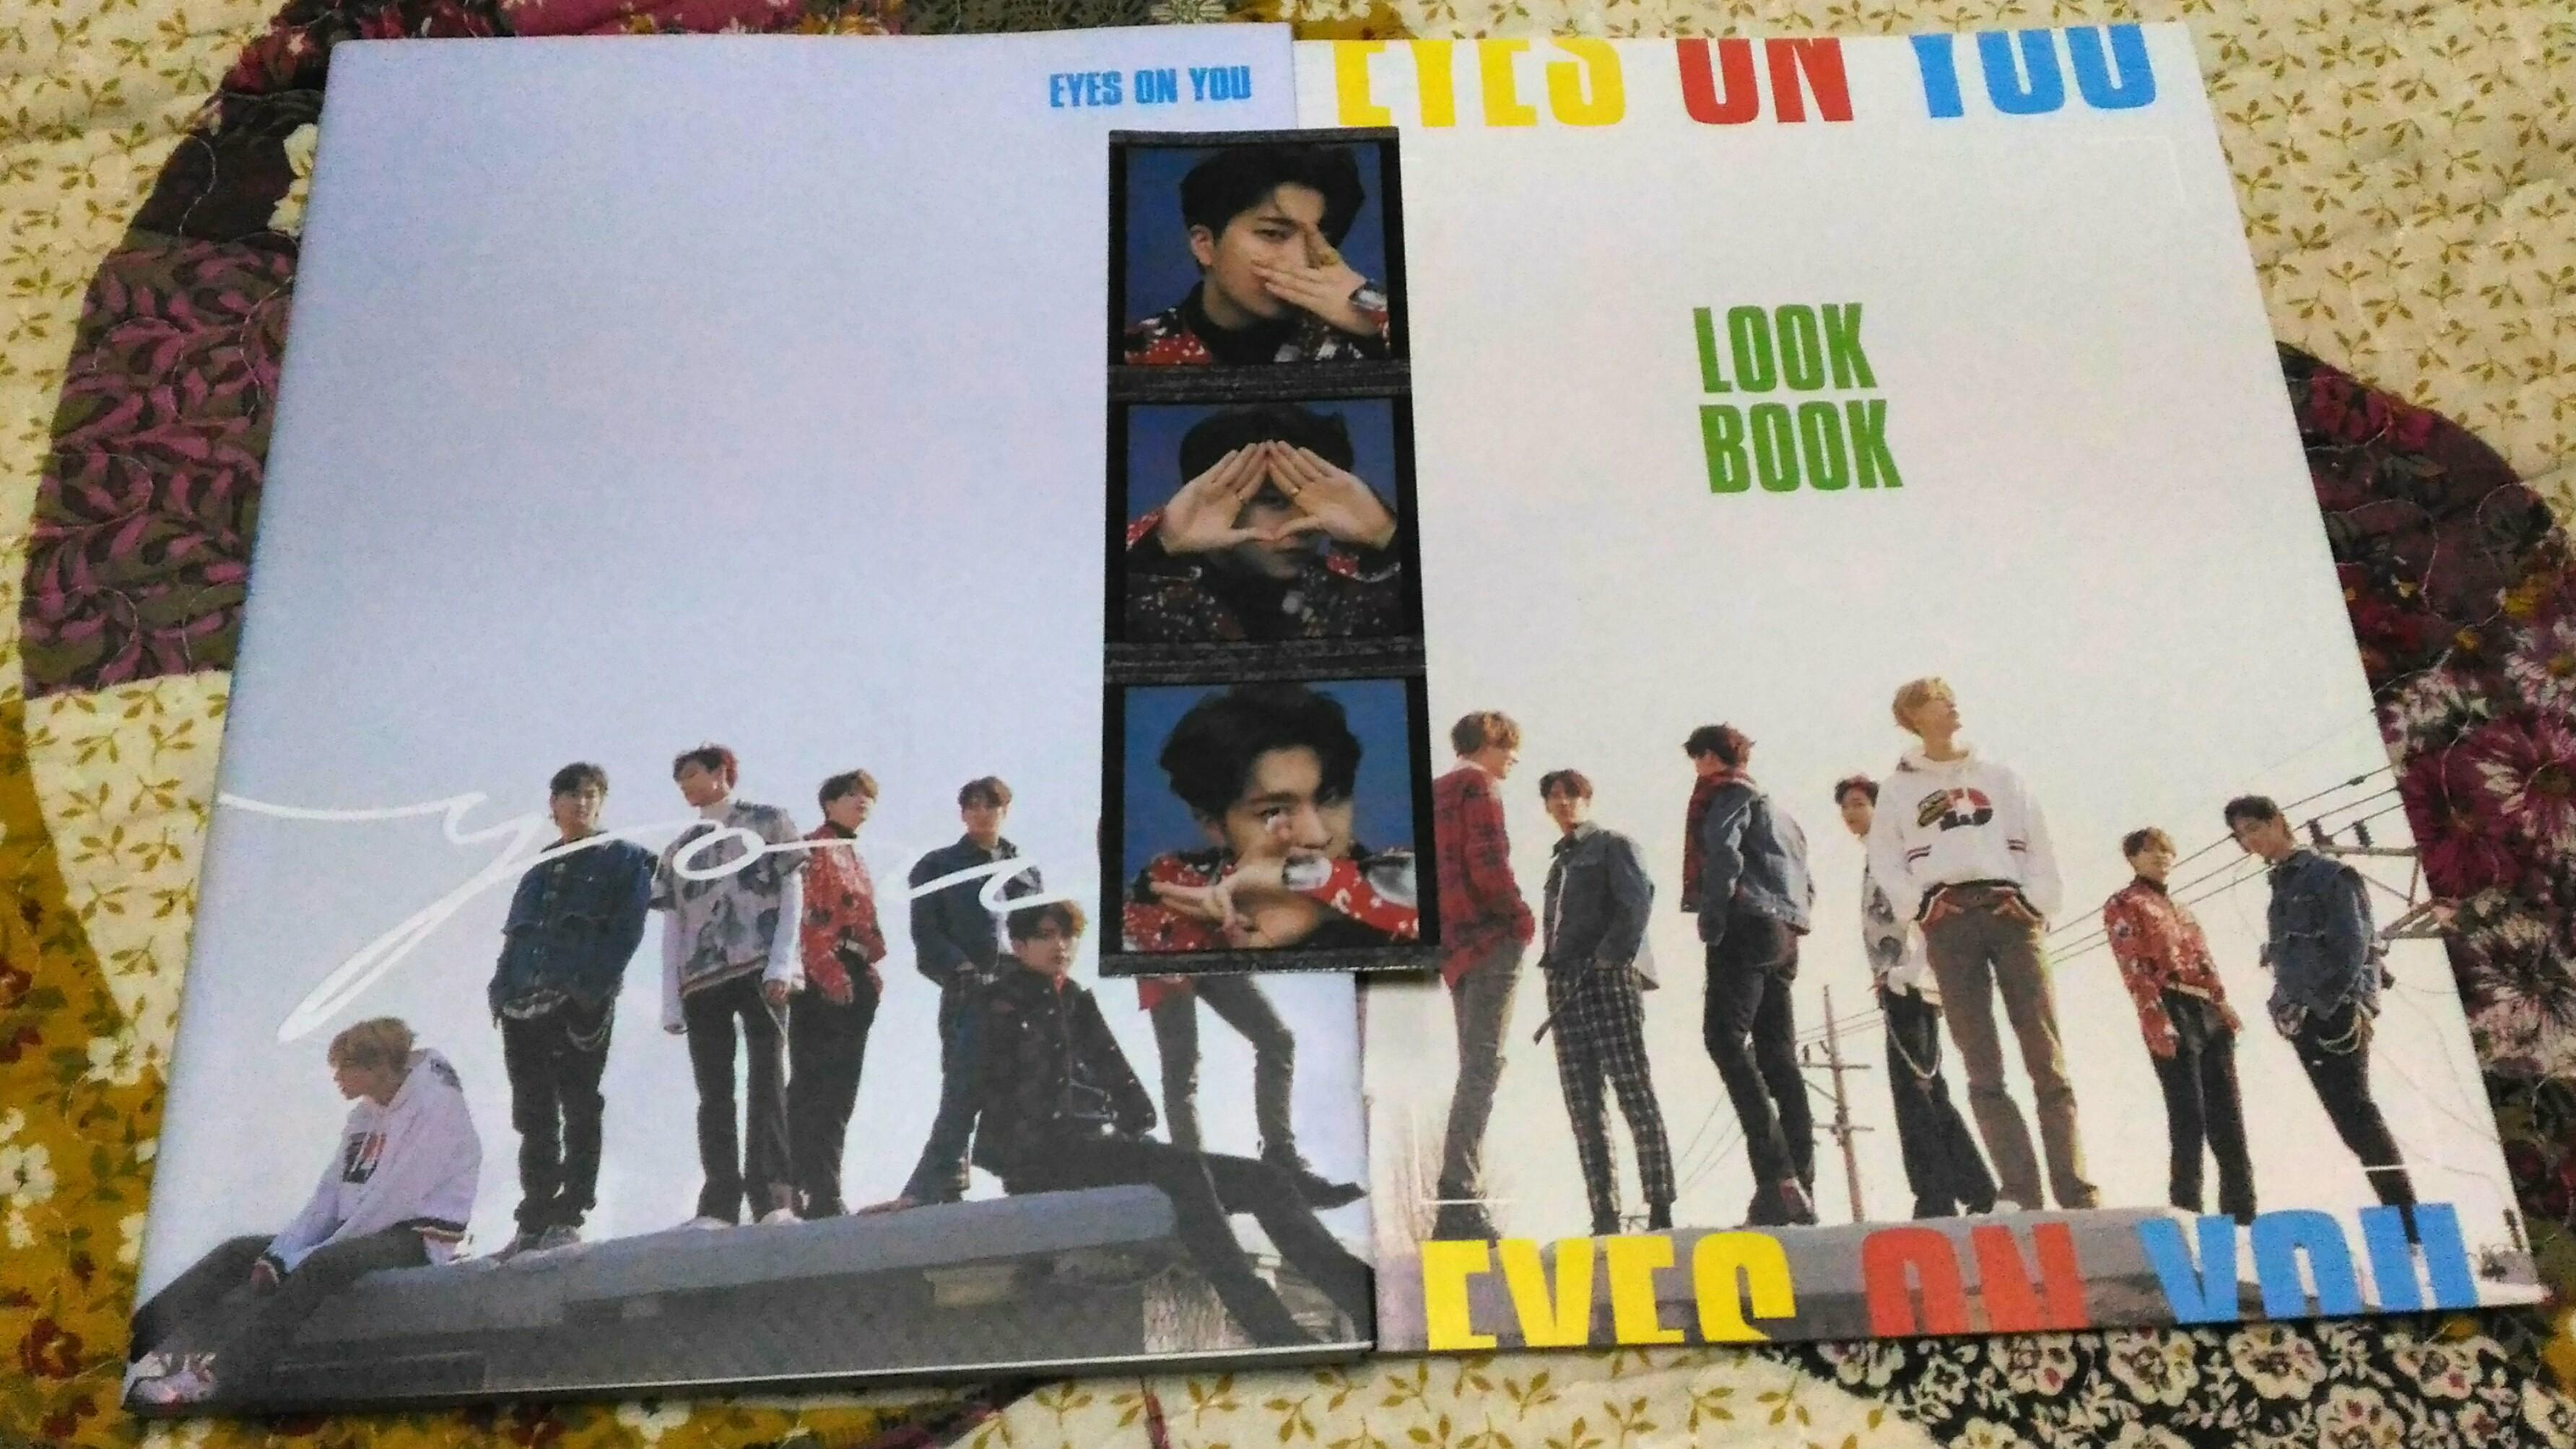 Got7 Eyes on you album  (You version) + Preorder Look book